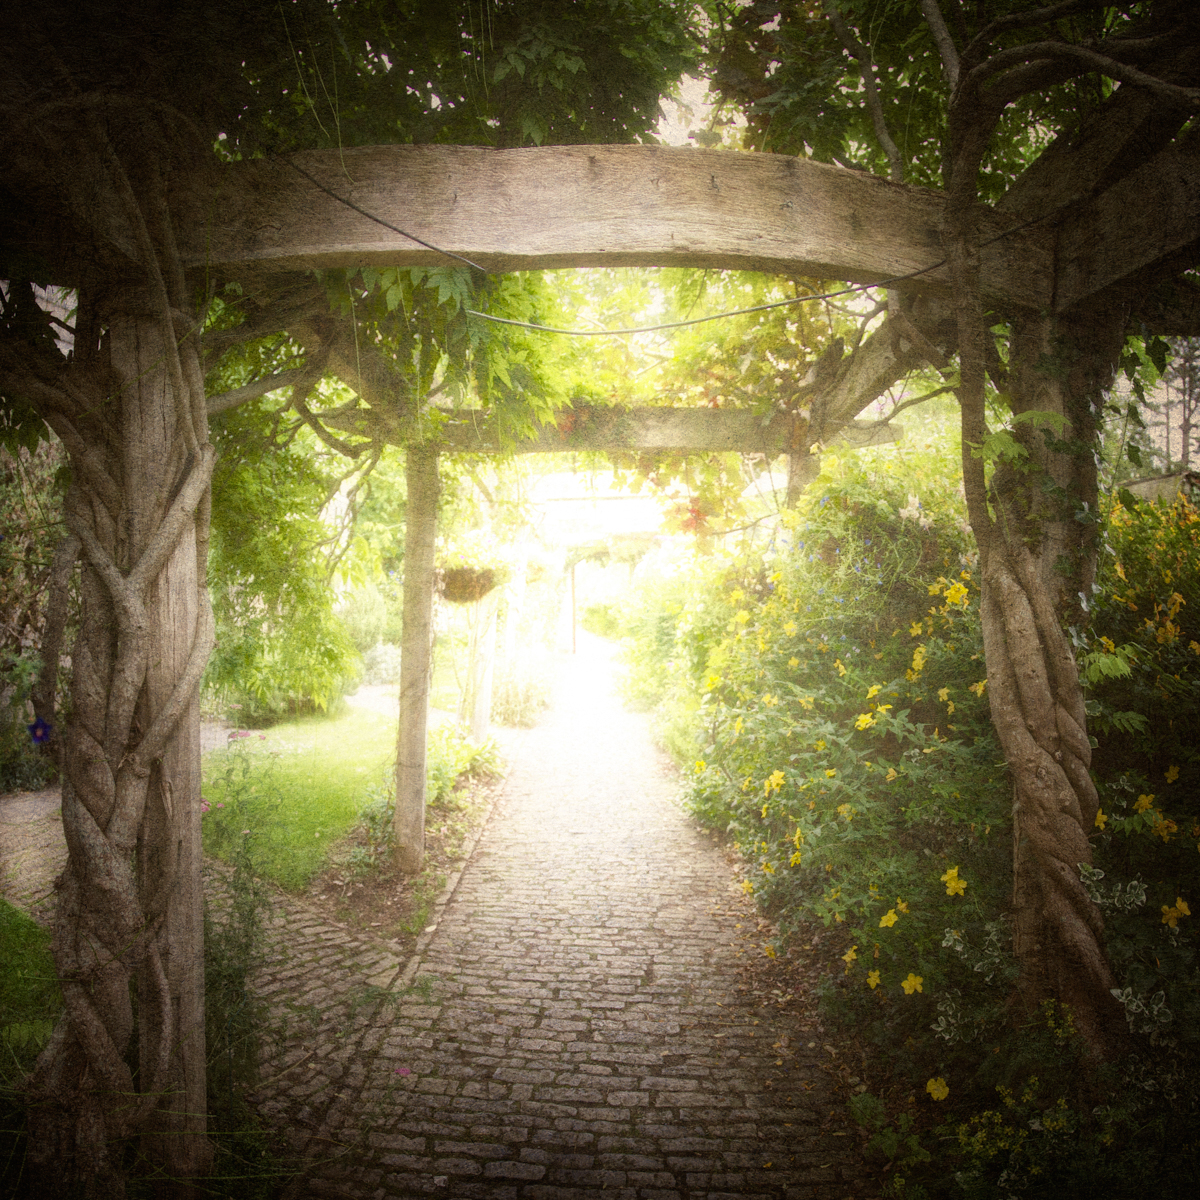 Entrance to Chalice Well Gardens in Glastonbury